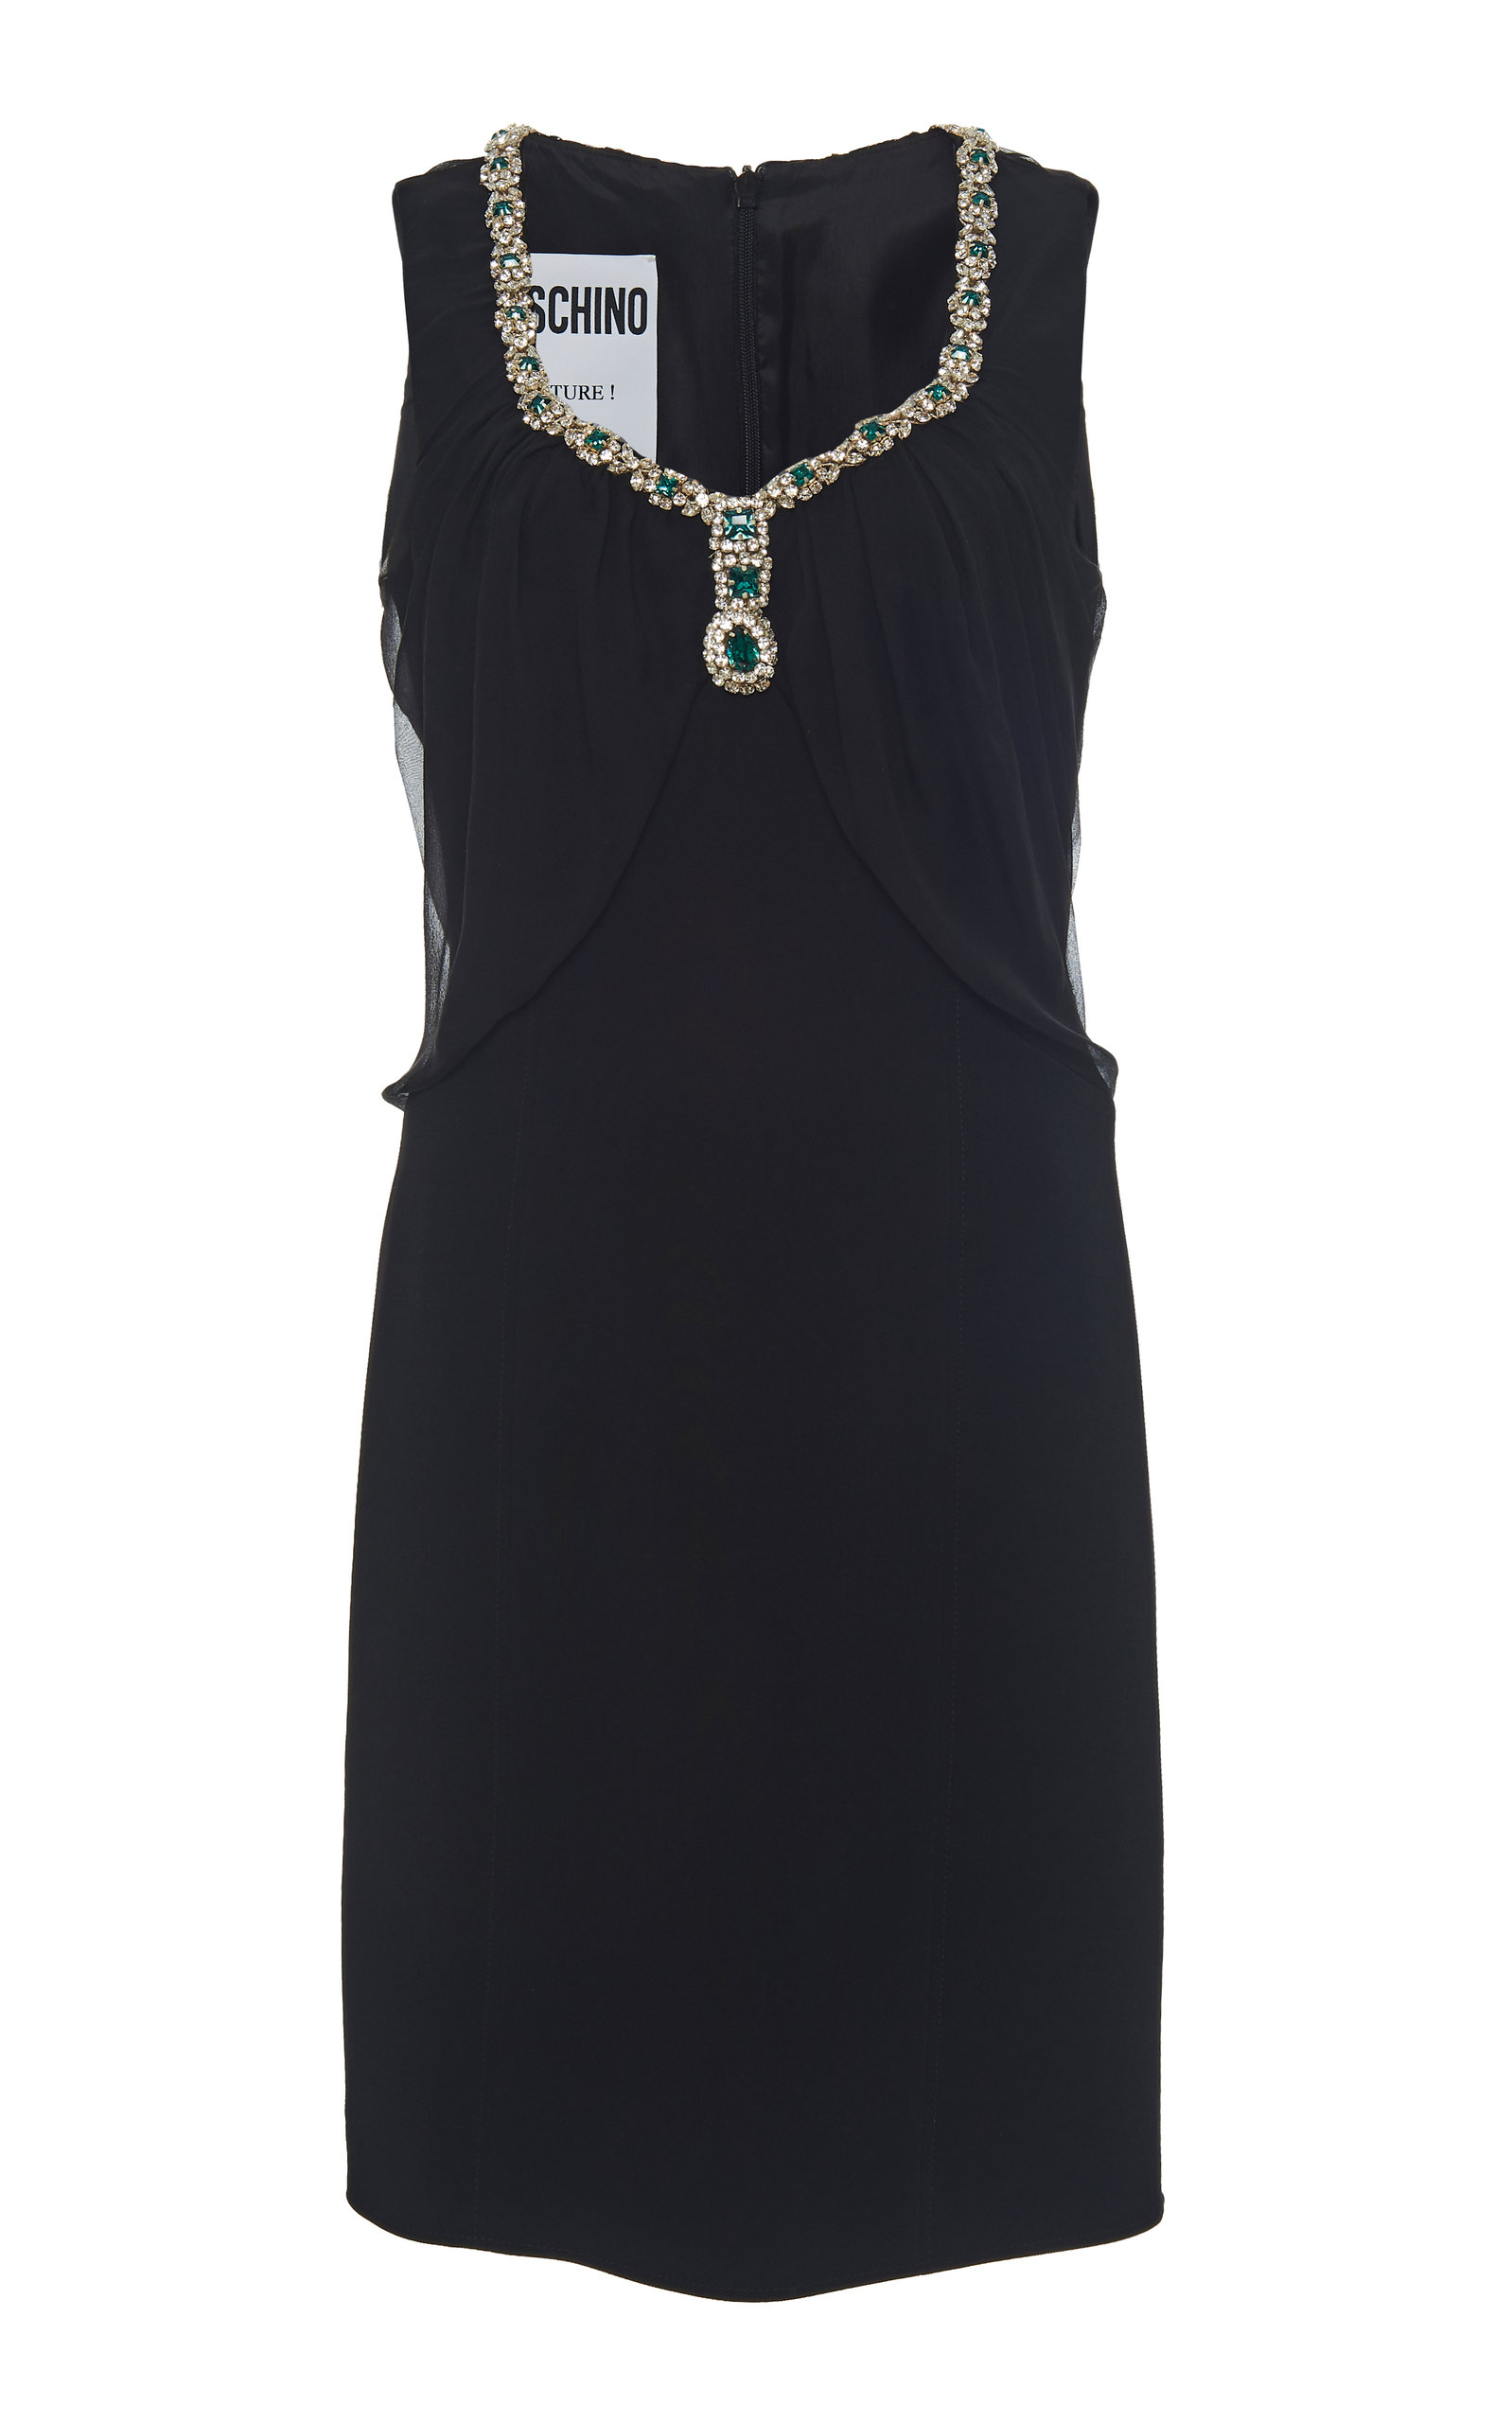 7d8dc008419 Jewel-Embellished Sheath Dress by Moschino